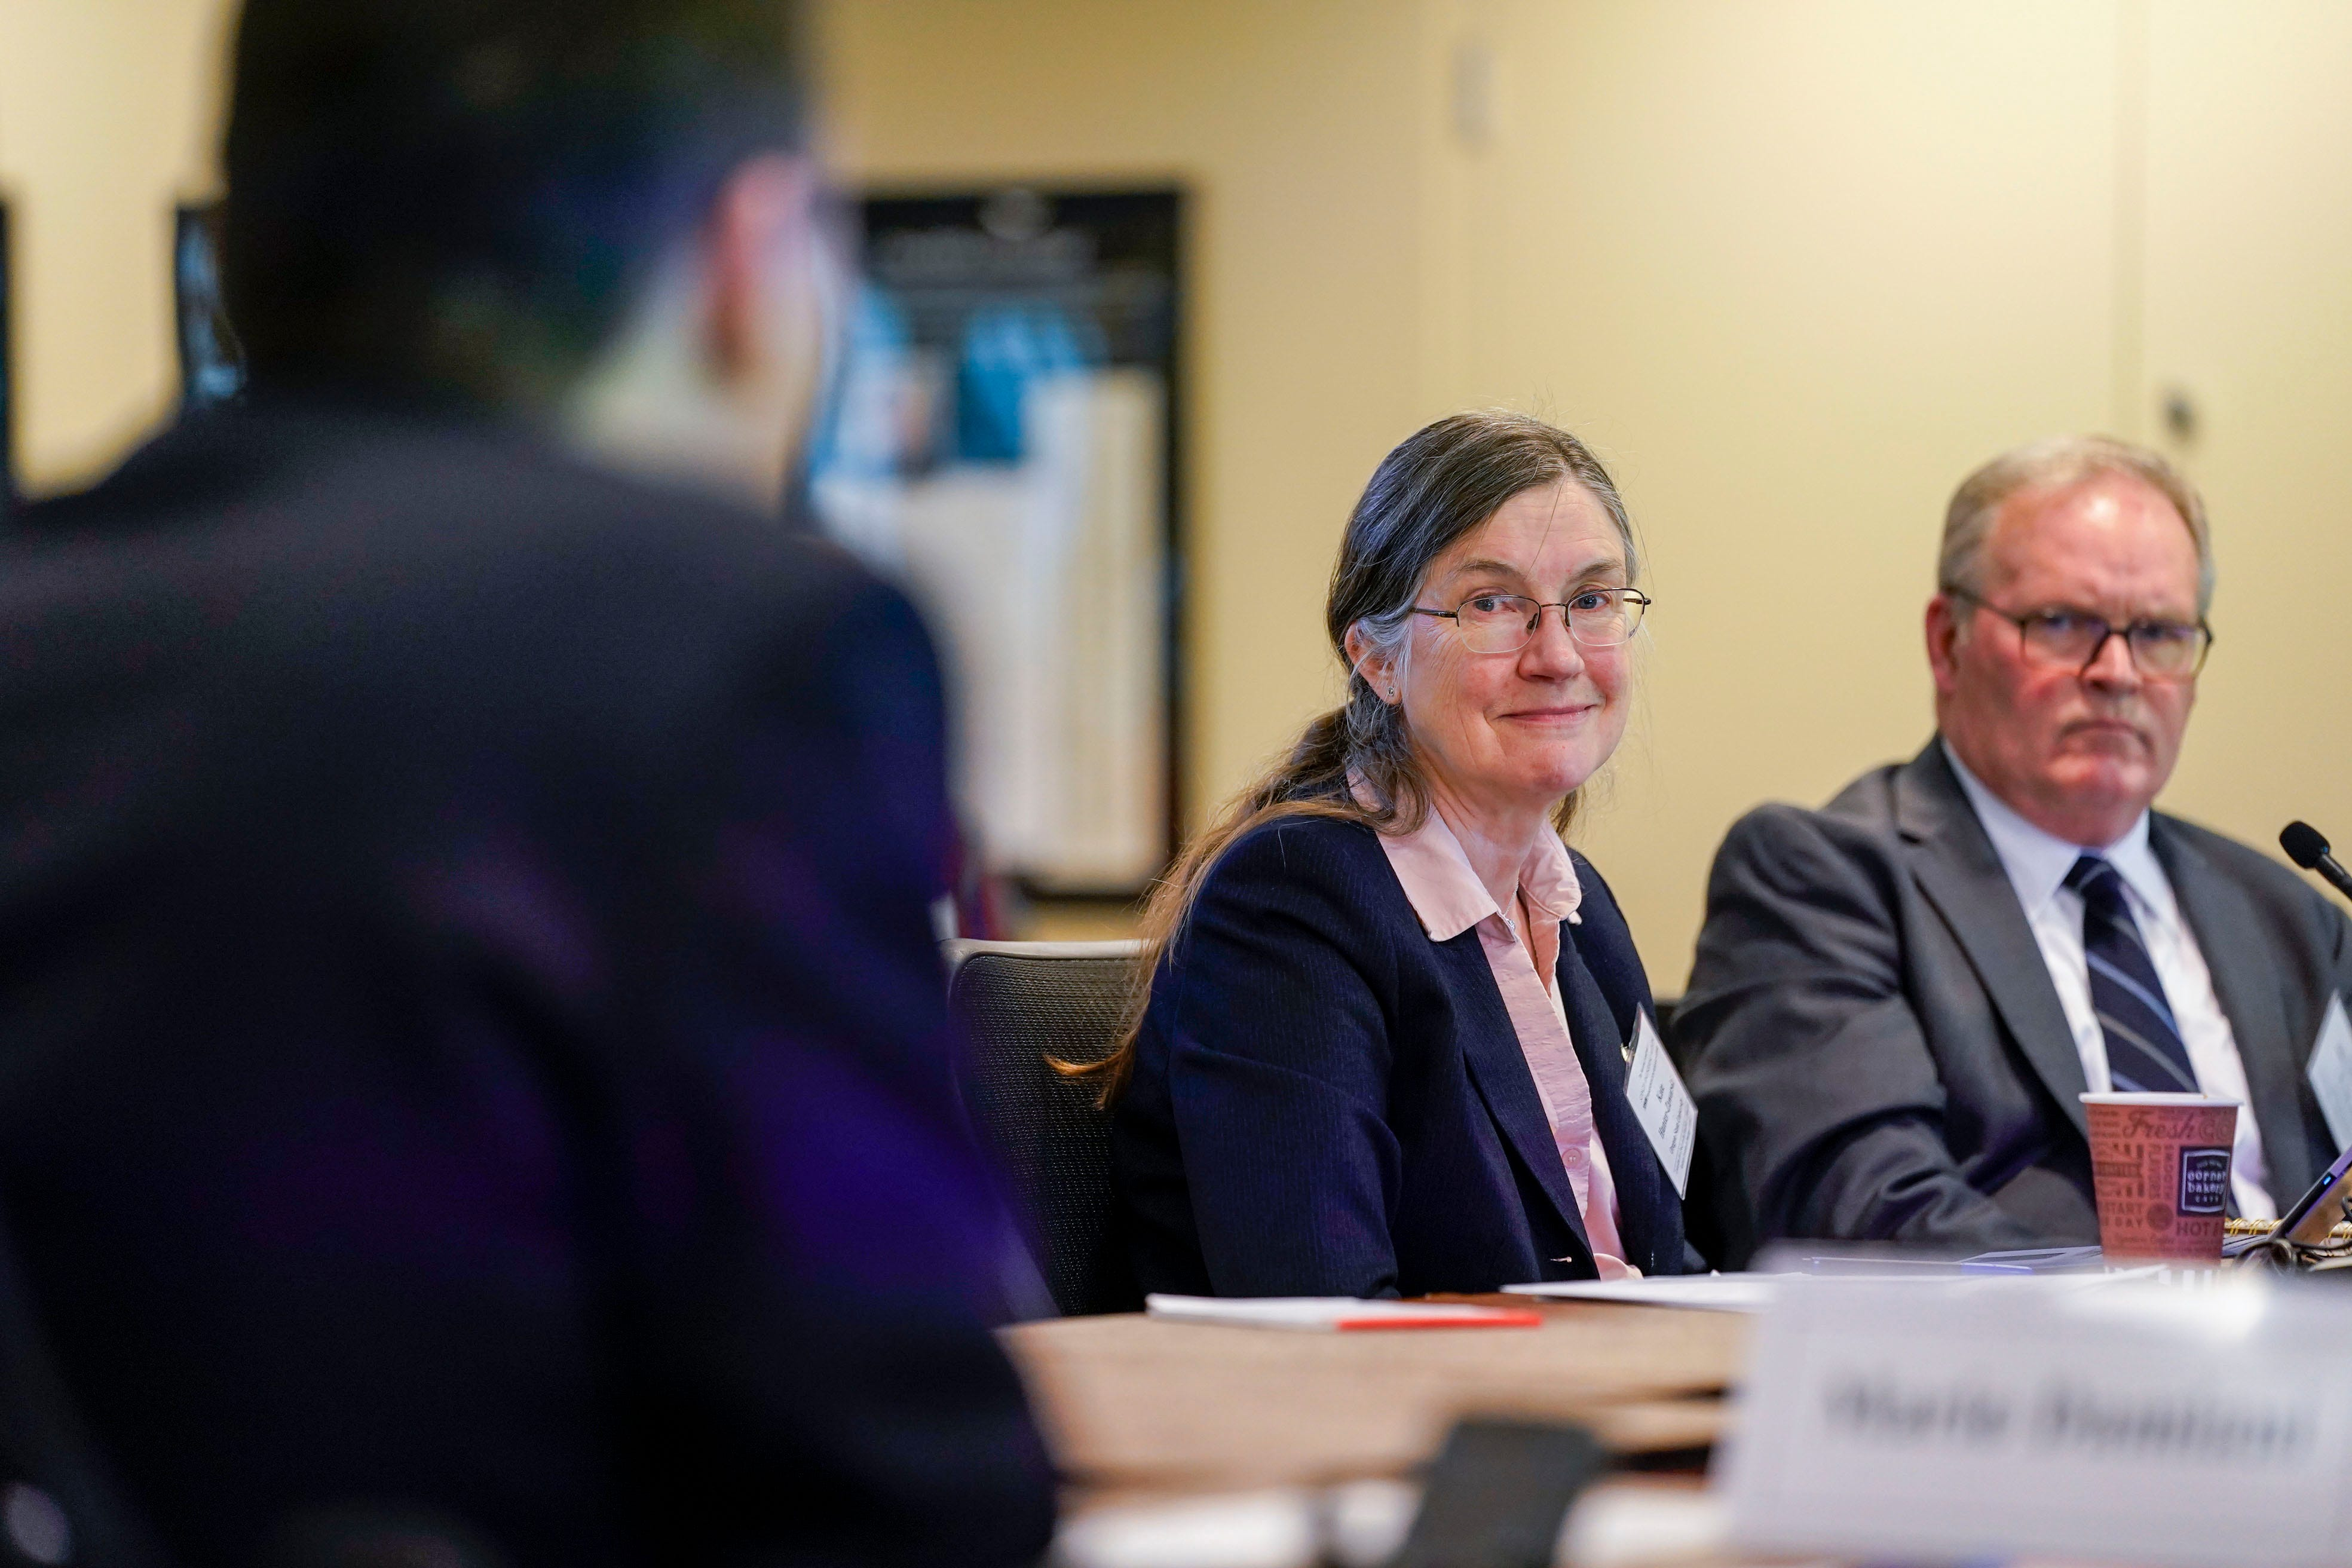 Board member Katharine M. Hunter-Zaworski listens in during the National Transportation Research Board meeting on the possibility of including wheelchairs on commercial flights in Washington, D.C.